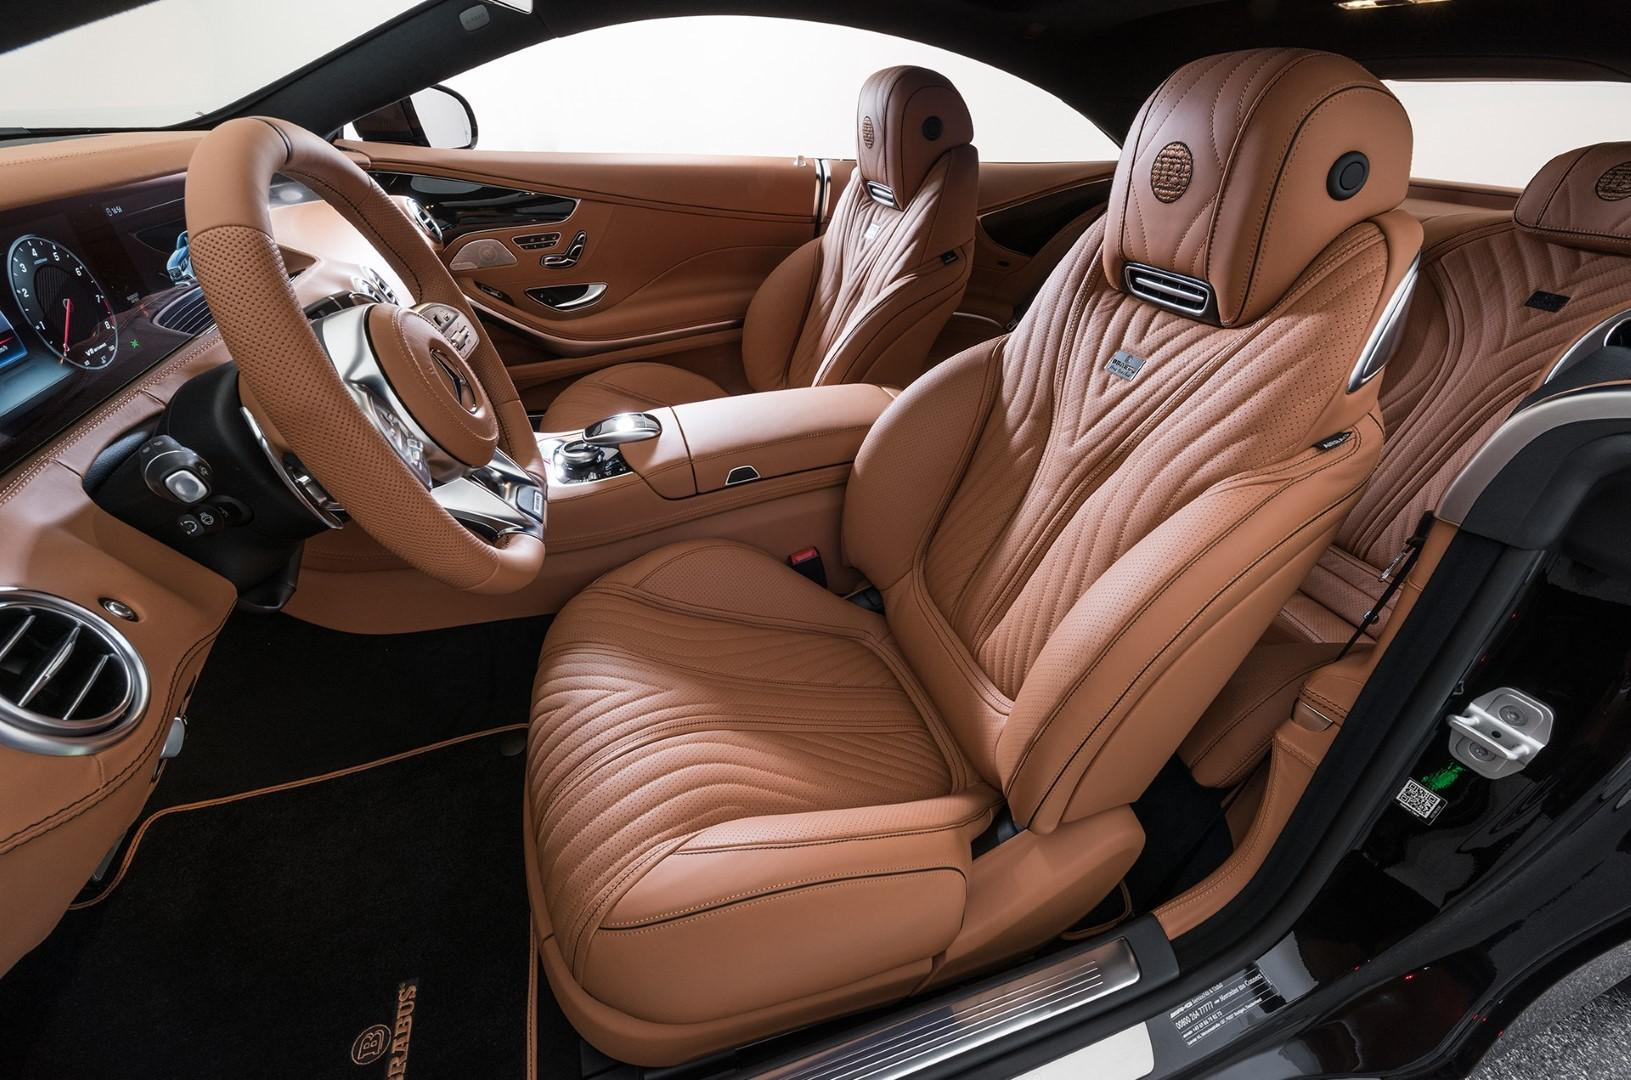 brabus-800-performance-mercedes-benz-s63-4matic-coupe-803-5.jpg